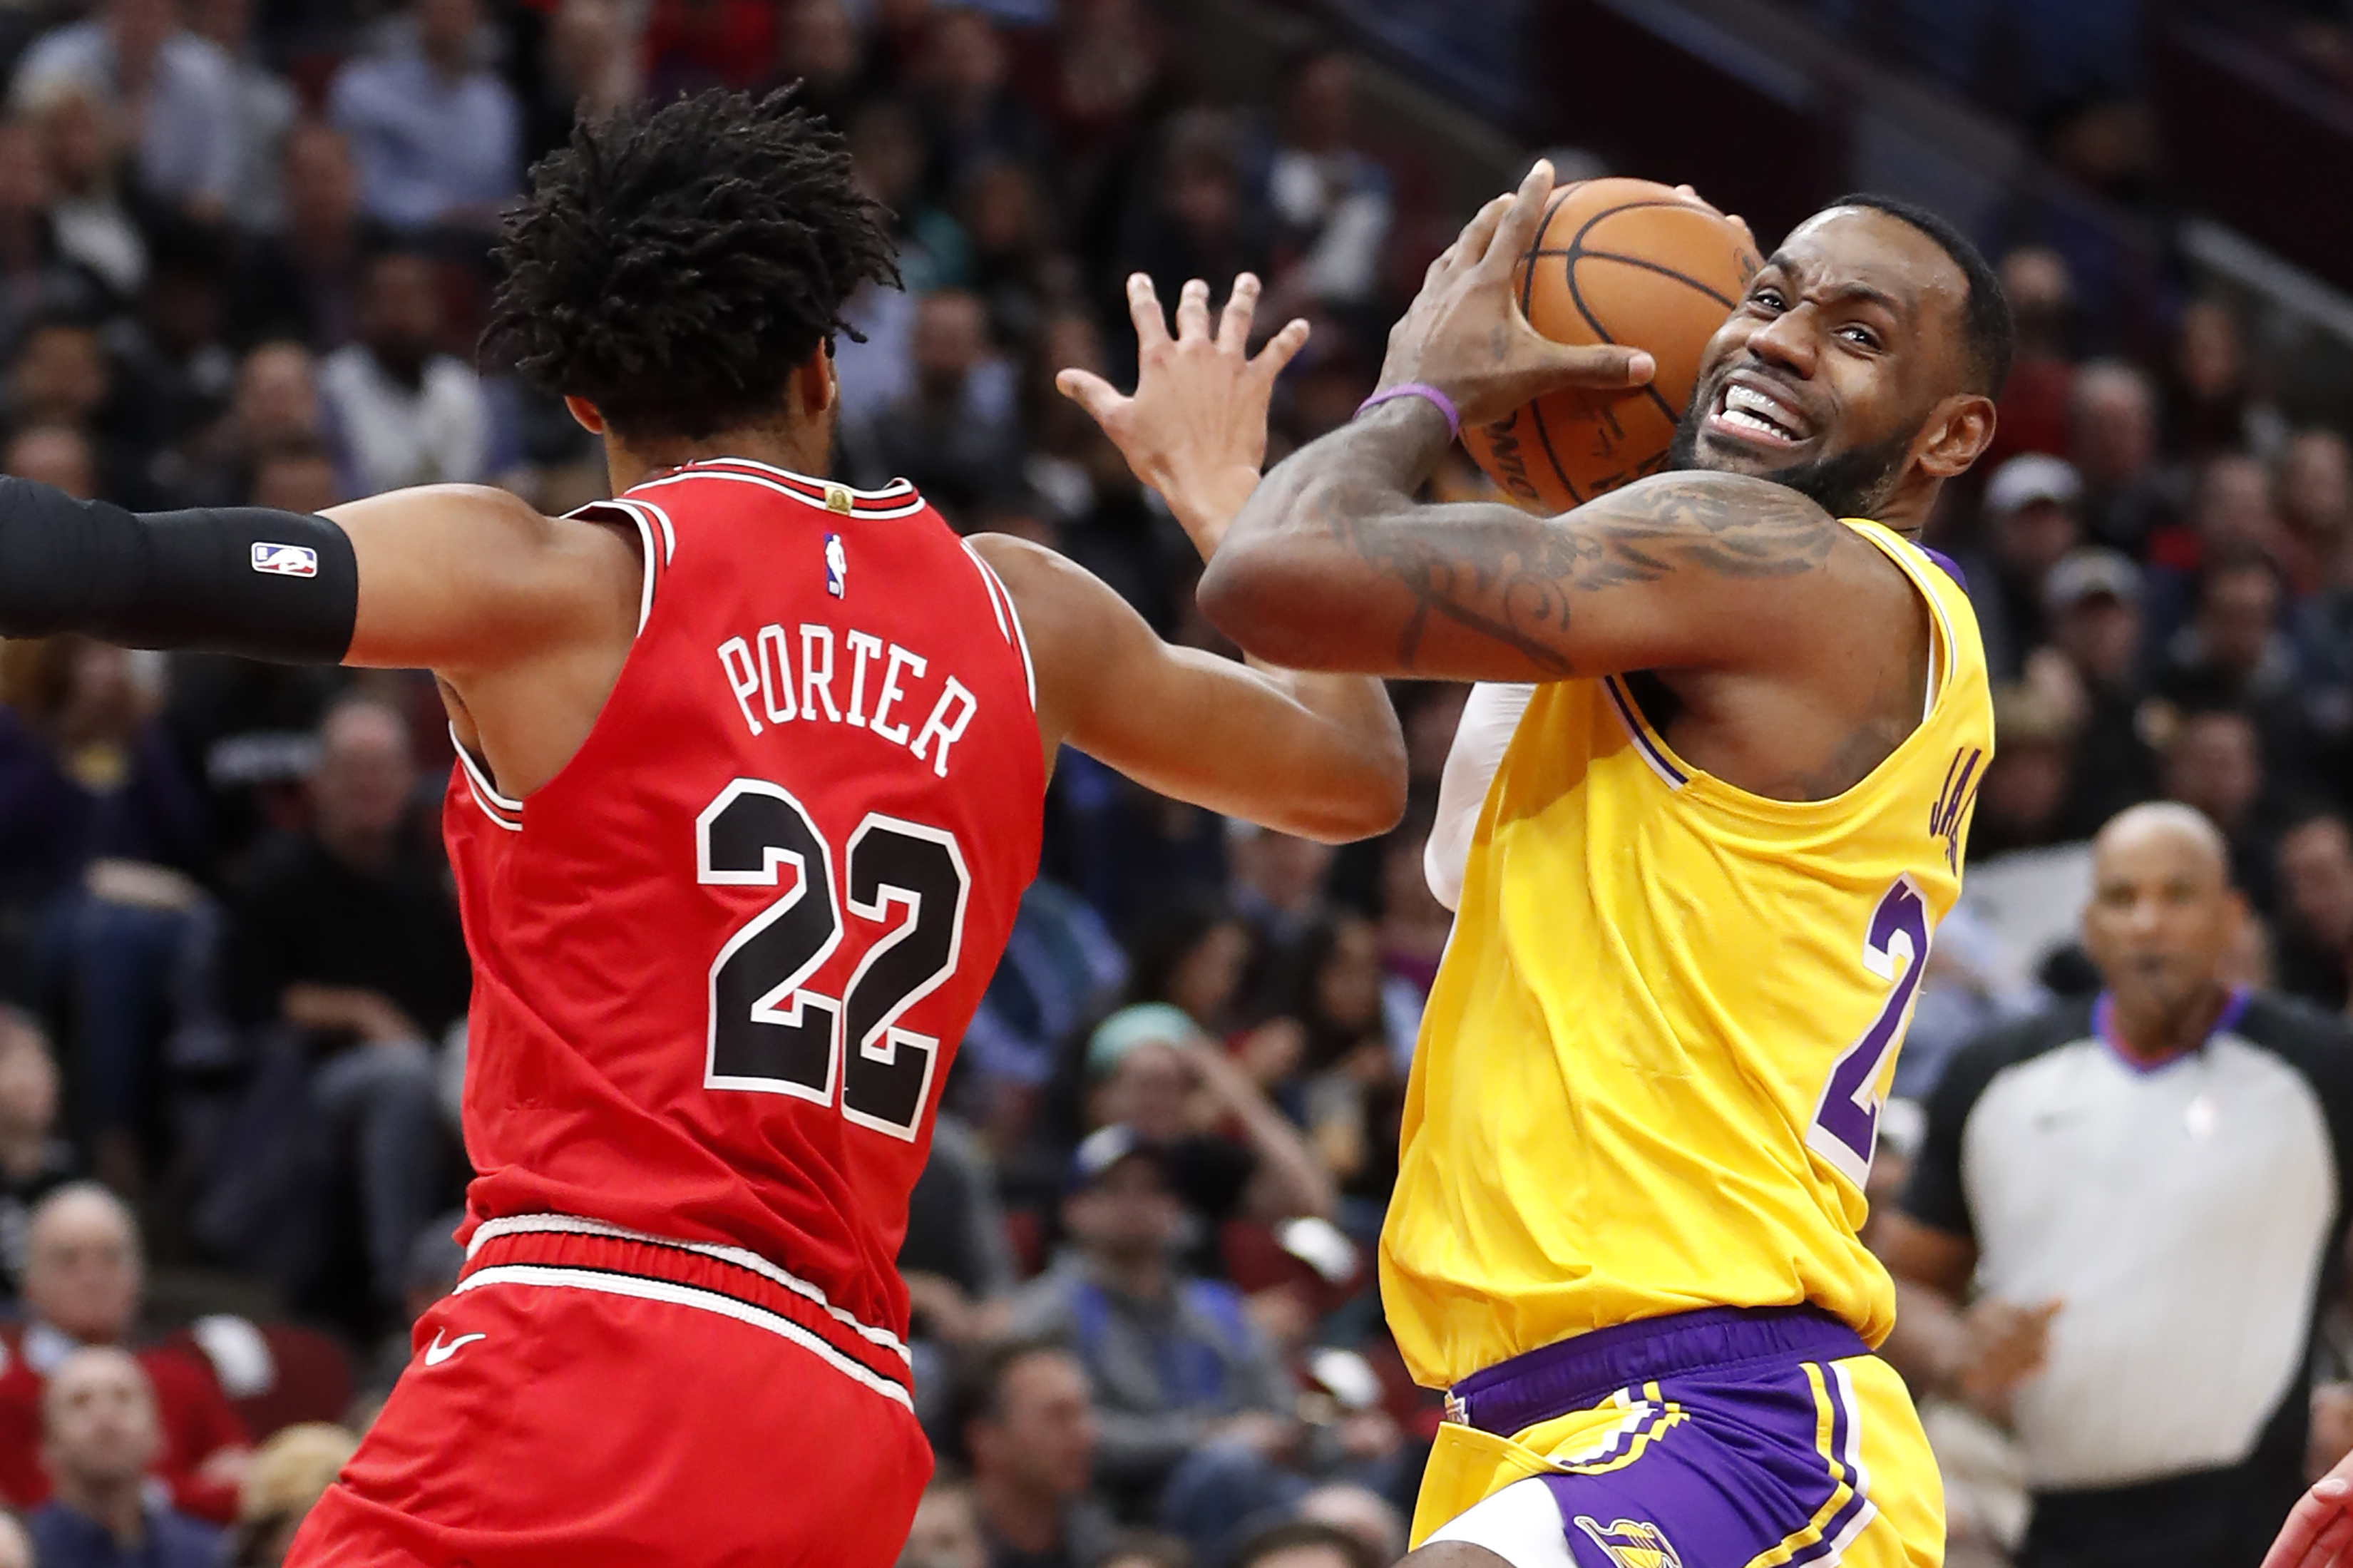 The Lakers' LeBron James drives to the basket past the Bulls' Otto Porter Jr. Tuesday at the United Center.